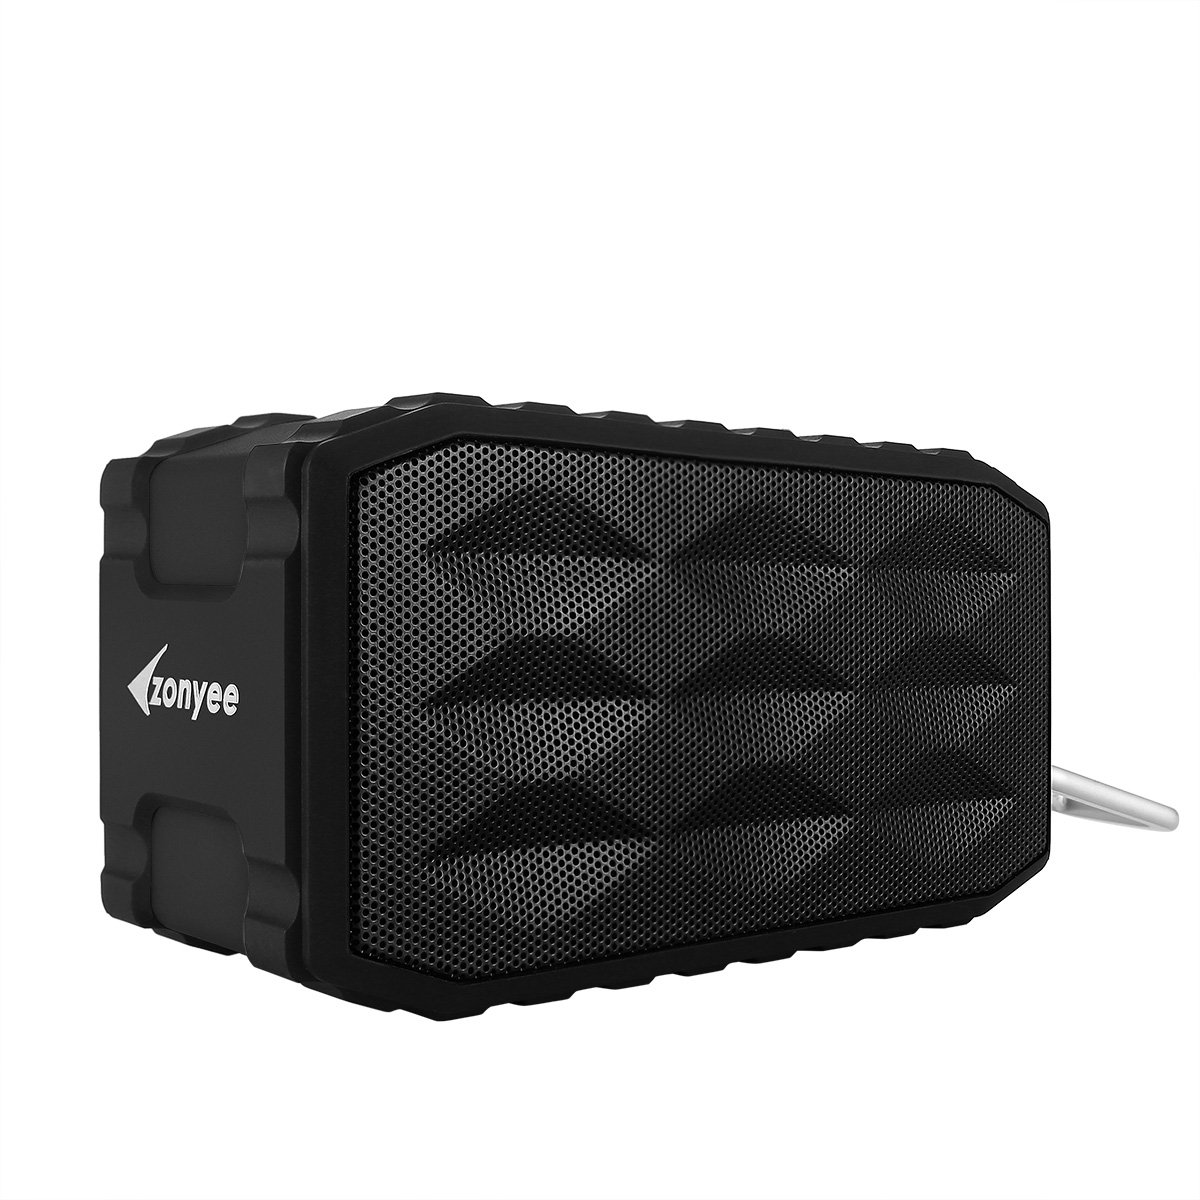 Zonyee Ultra Portable Wireless Stereo Pairing Splashproof Bluetooth Speakers with 8W Dual-Drive Heavy Subwoofers, Hands Free Calls, Support A2DP/NFC/TF Card, Dustproof and Shockproof- Black